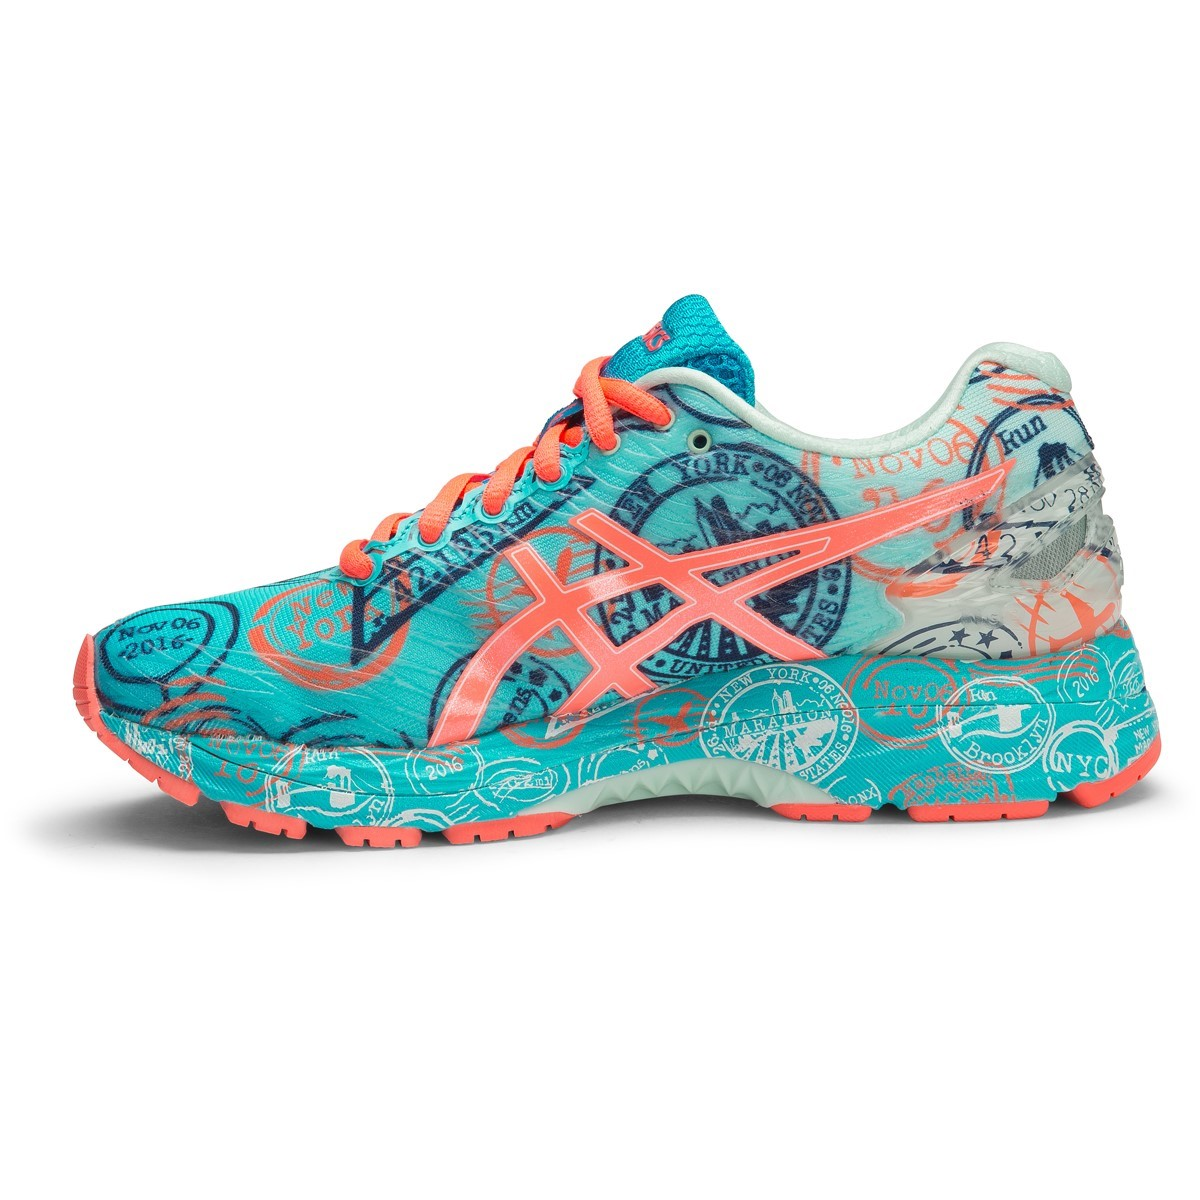 asics gel nimbus 18 nyc limited edition womens running. Black Bedroom Furniture Sets. Home Design Ideas